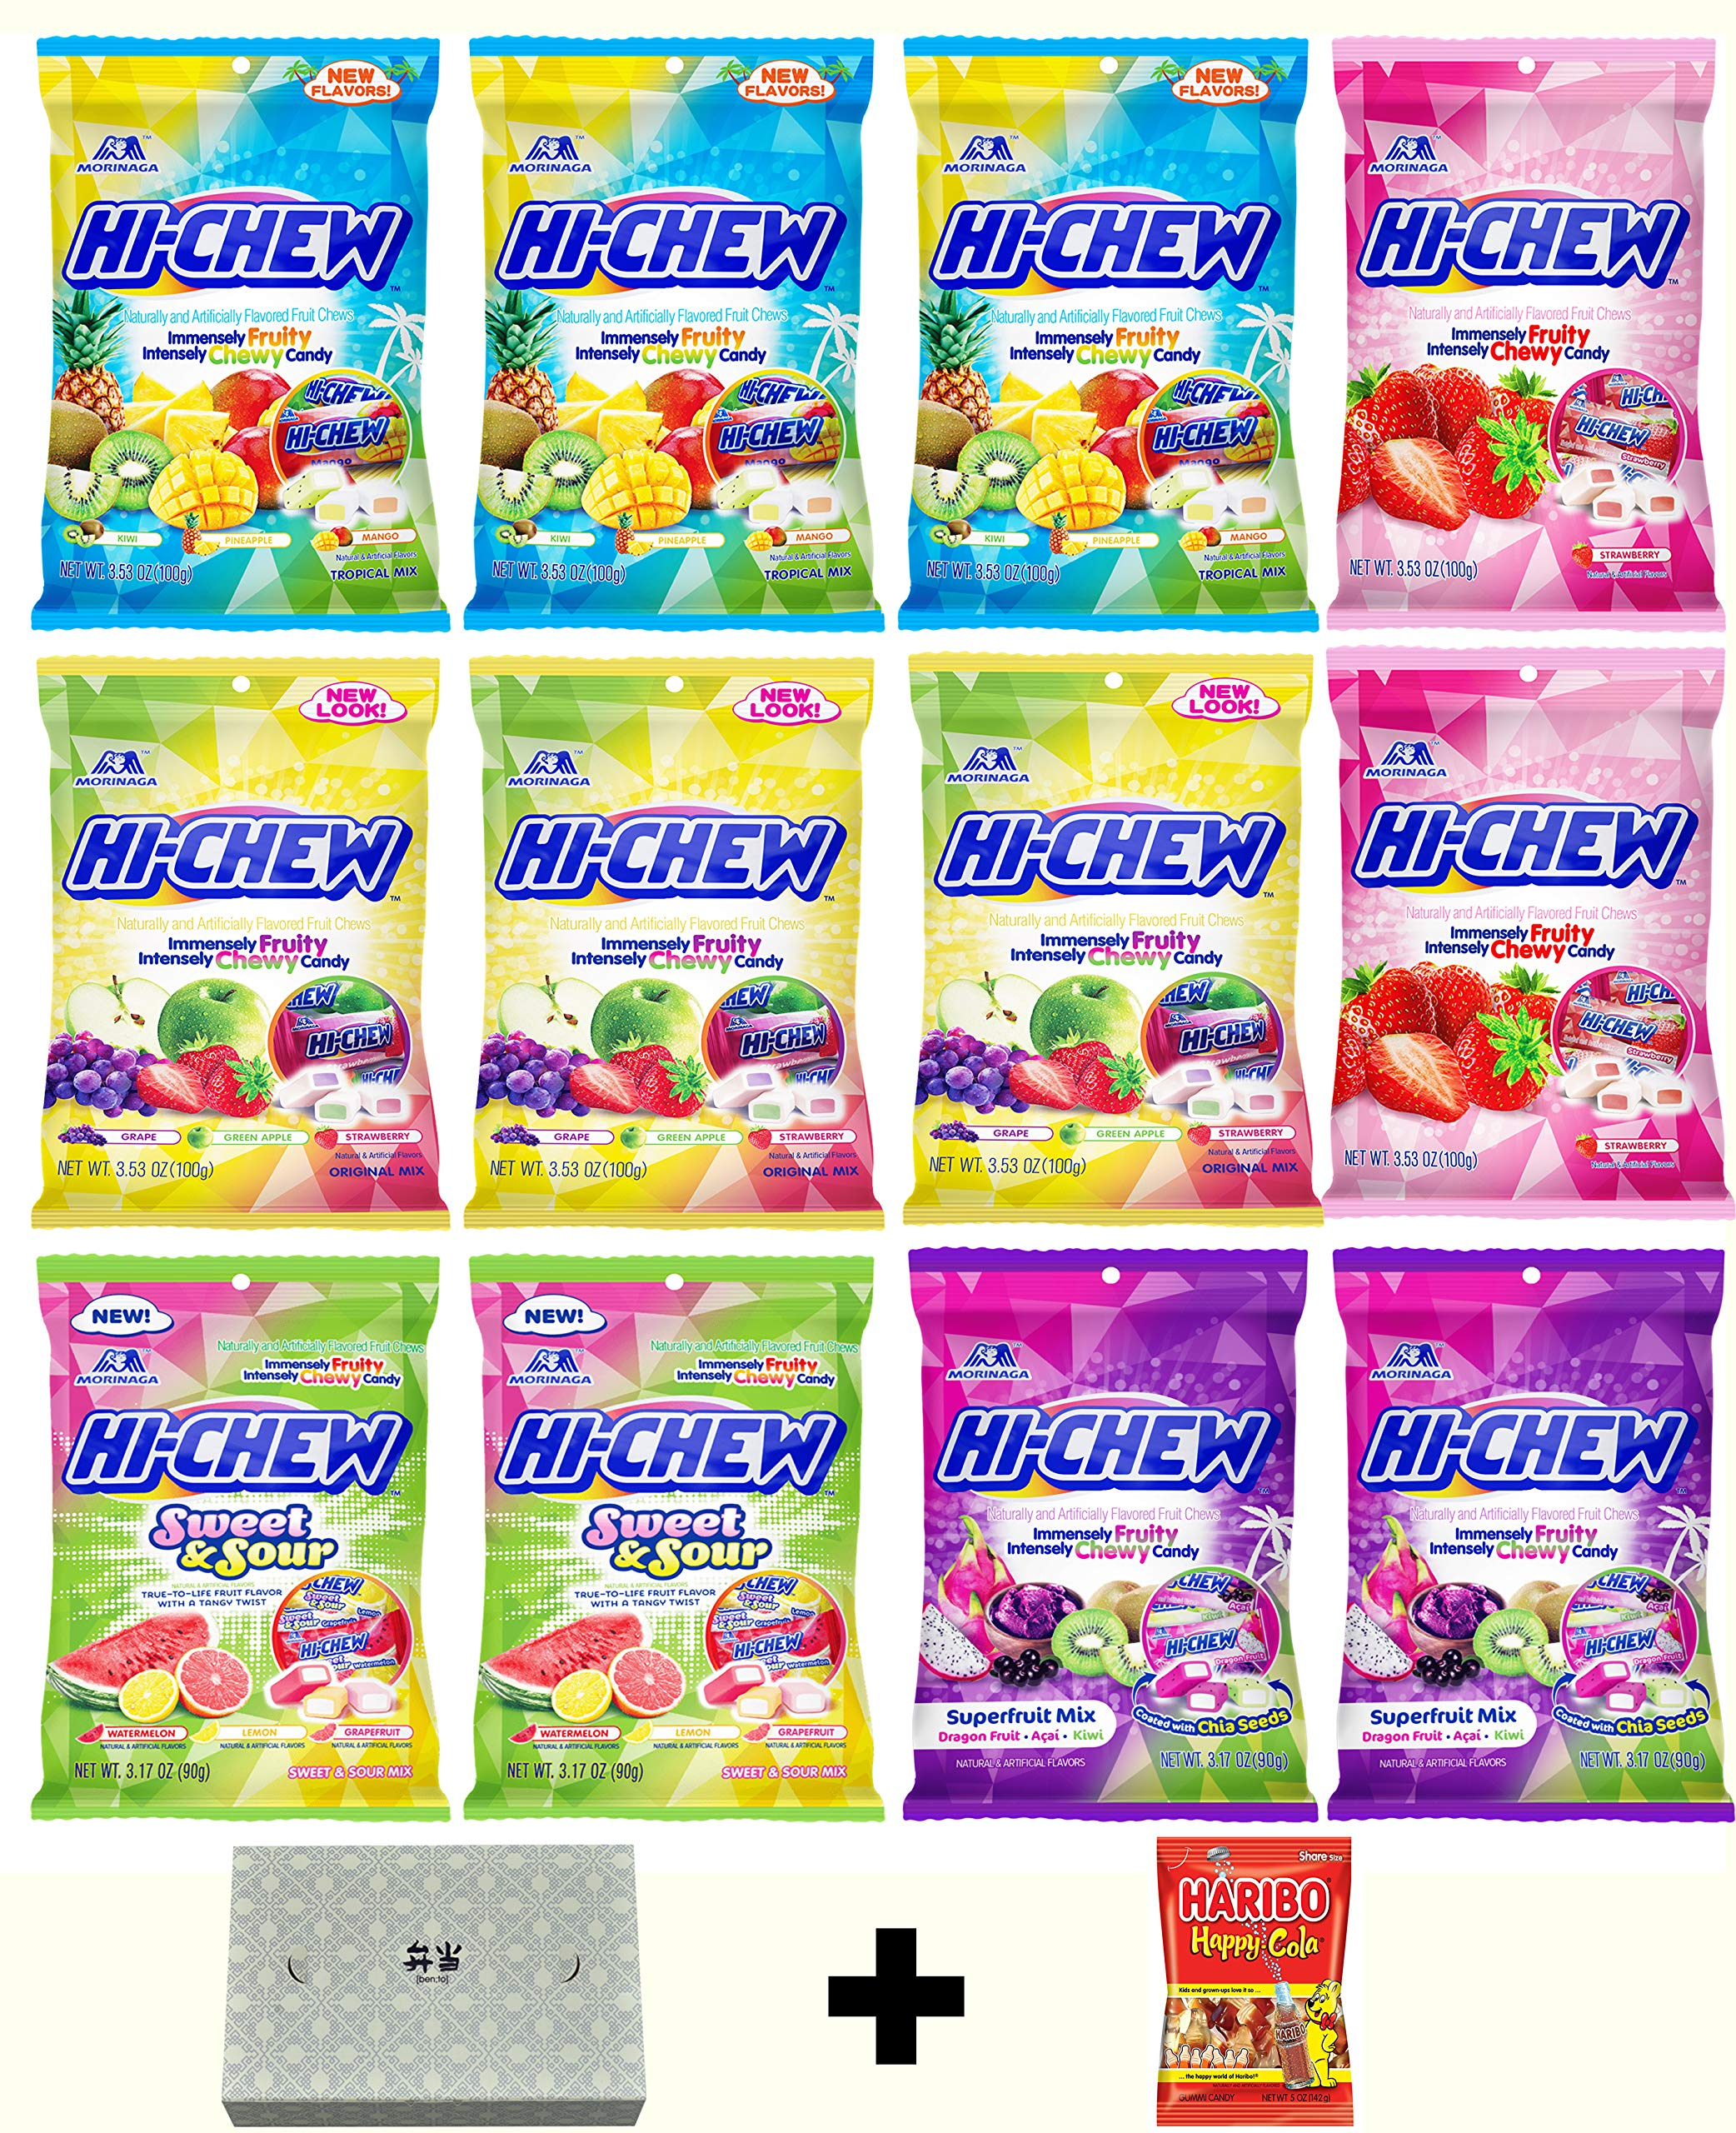 Hi Chew Candy Variety Pack 5 Flavors ( Superfruits, Sweet and Sour, Tropical Mix, Original Mix, and Strawberry) Pack of 12 by Hi-Chew